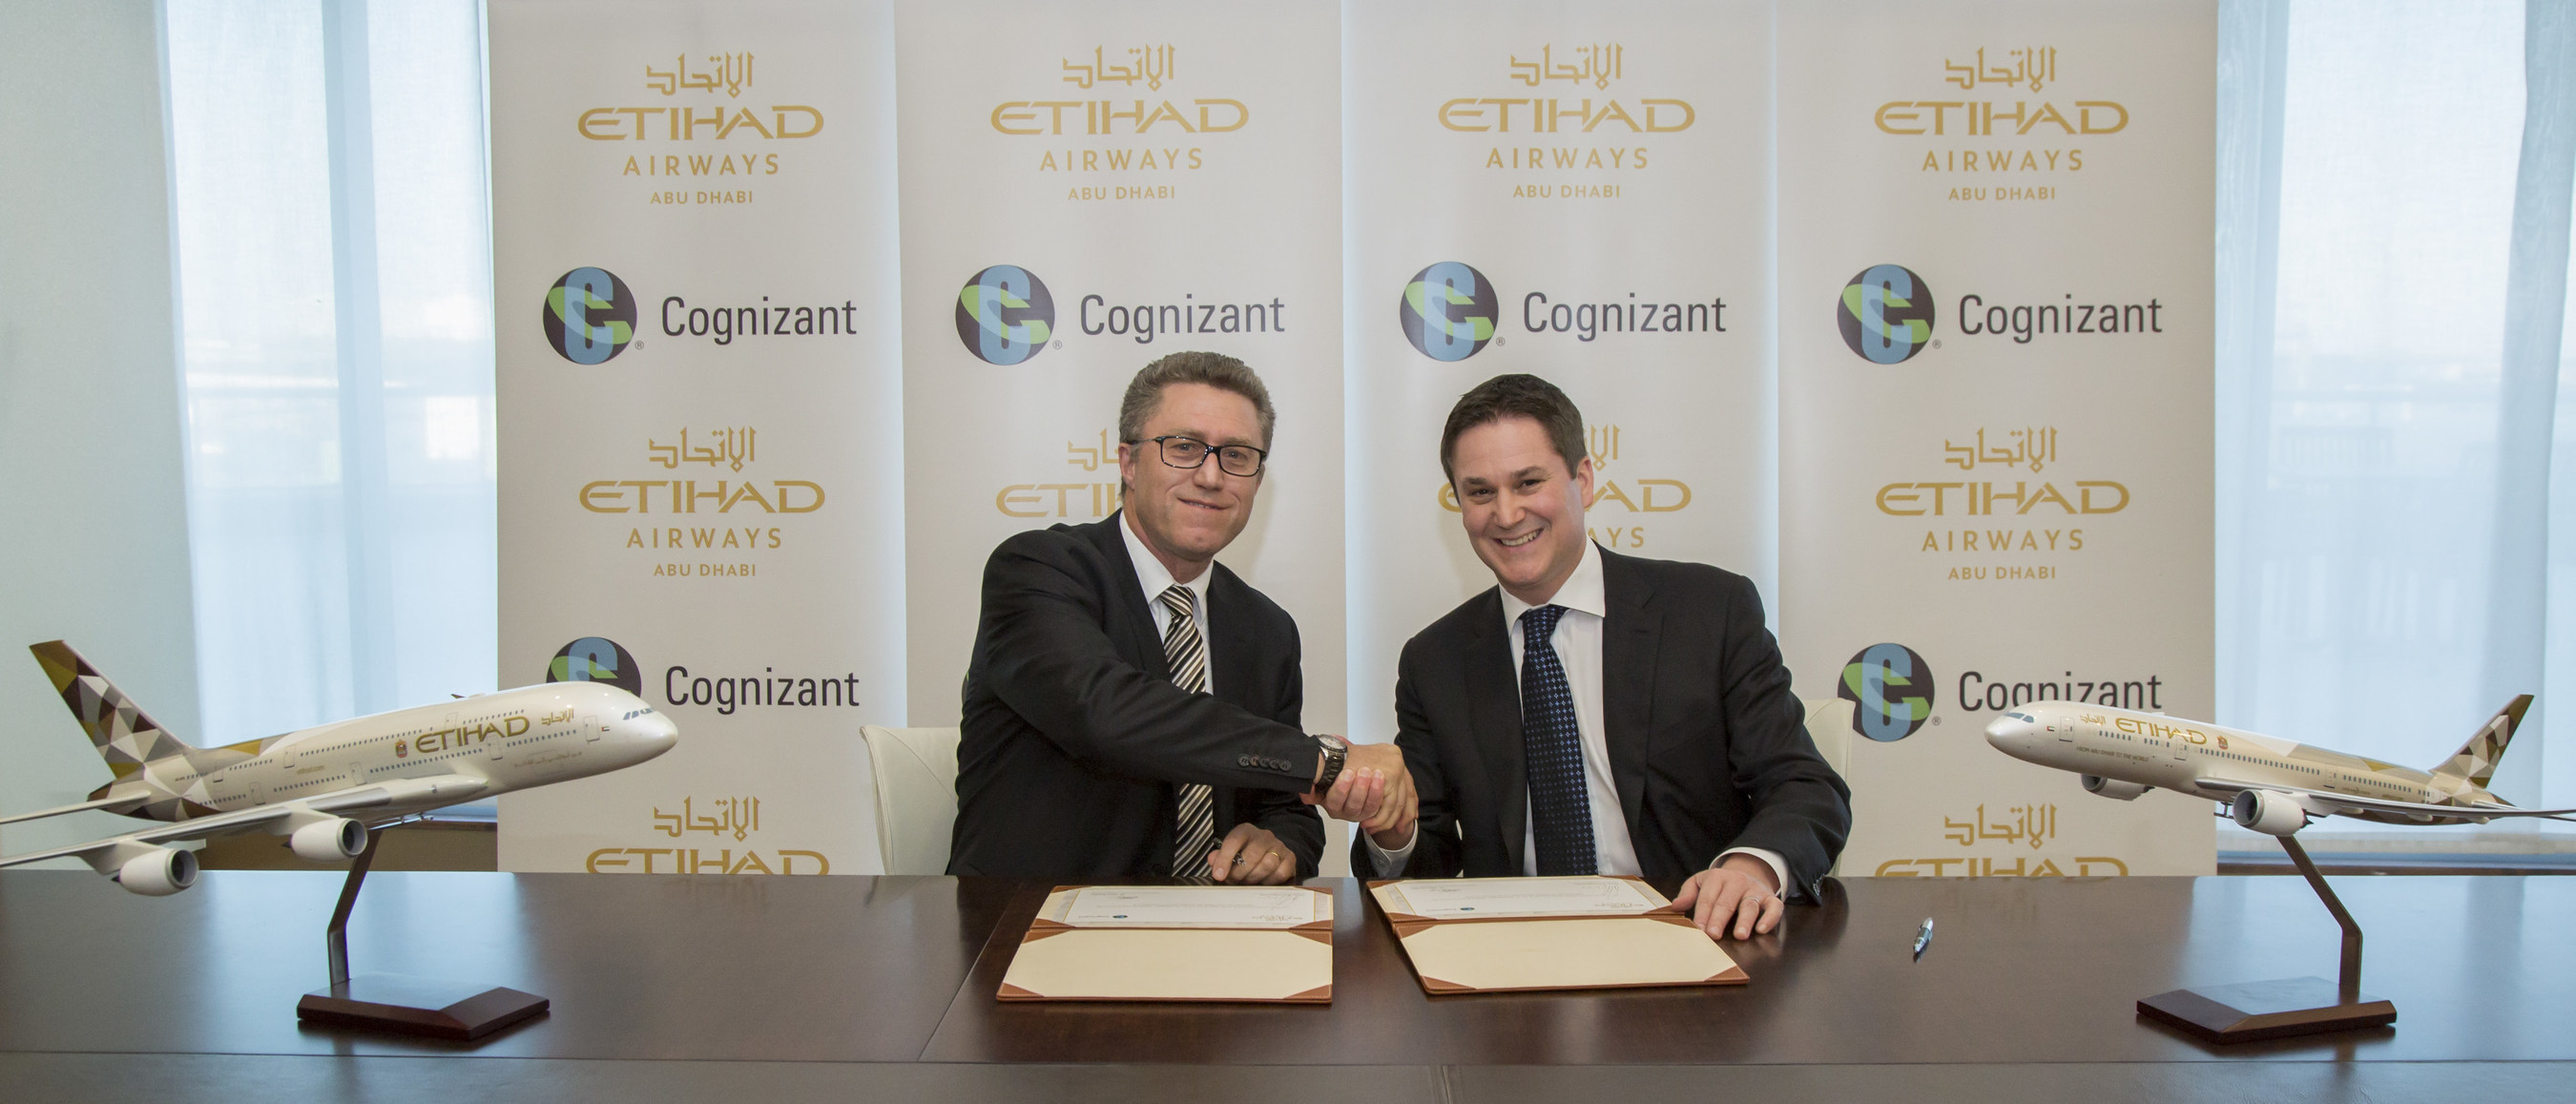 Dr. John Burgin, Head of Cognizant Digital Works, APAC and Middle East (left) and Peter Baumgartner, Etihad Airways' Chief Commercial Officer, sign the strategic agreement between Etihad Airways and Cognizant.